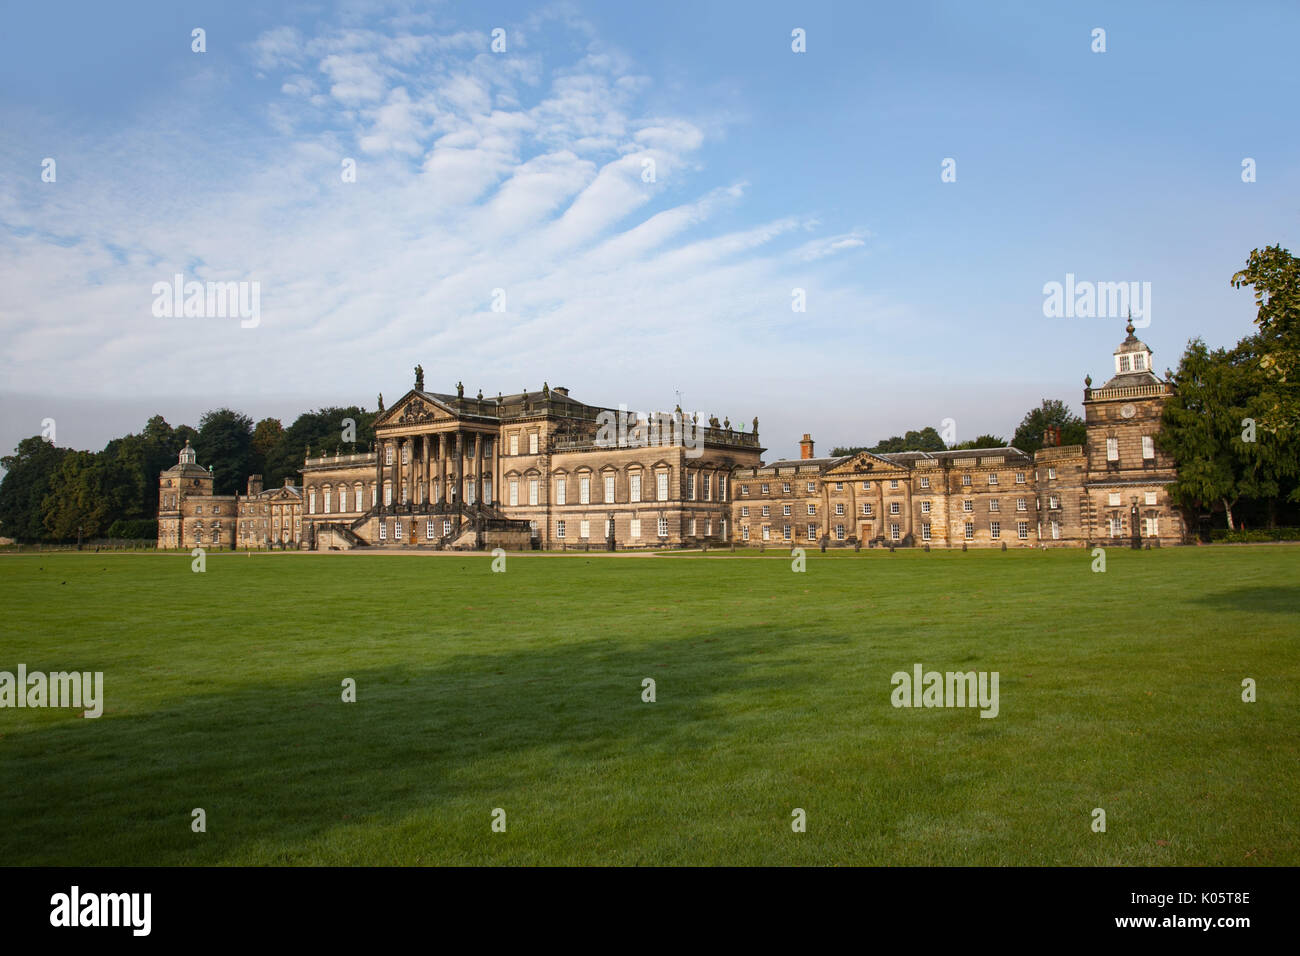 Wentworth Woodhouse, South Yorkshire, UK. 21st August 2017. Stately home currently being restored. Stock Photo